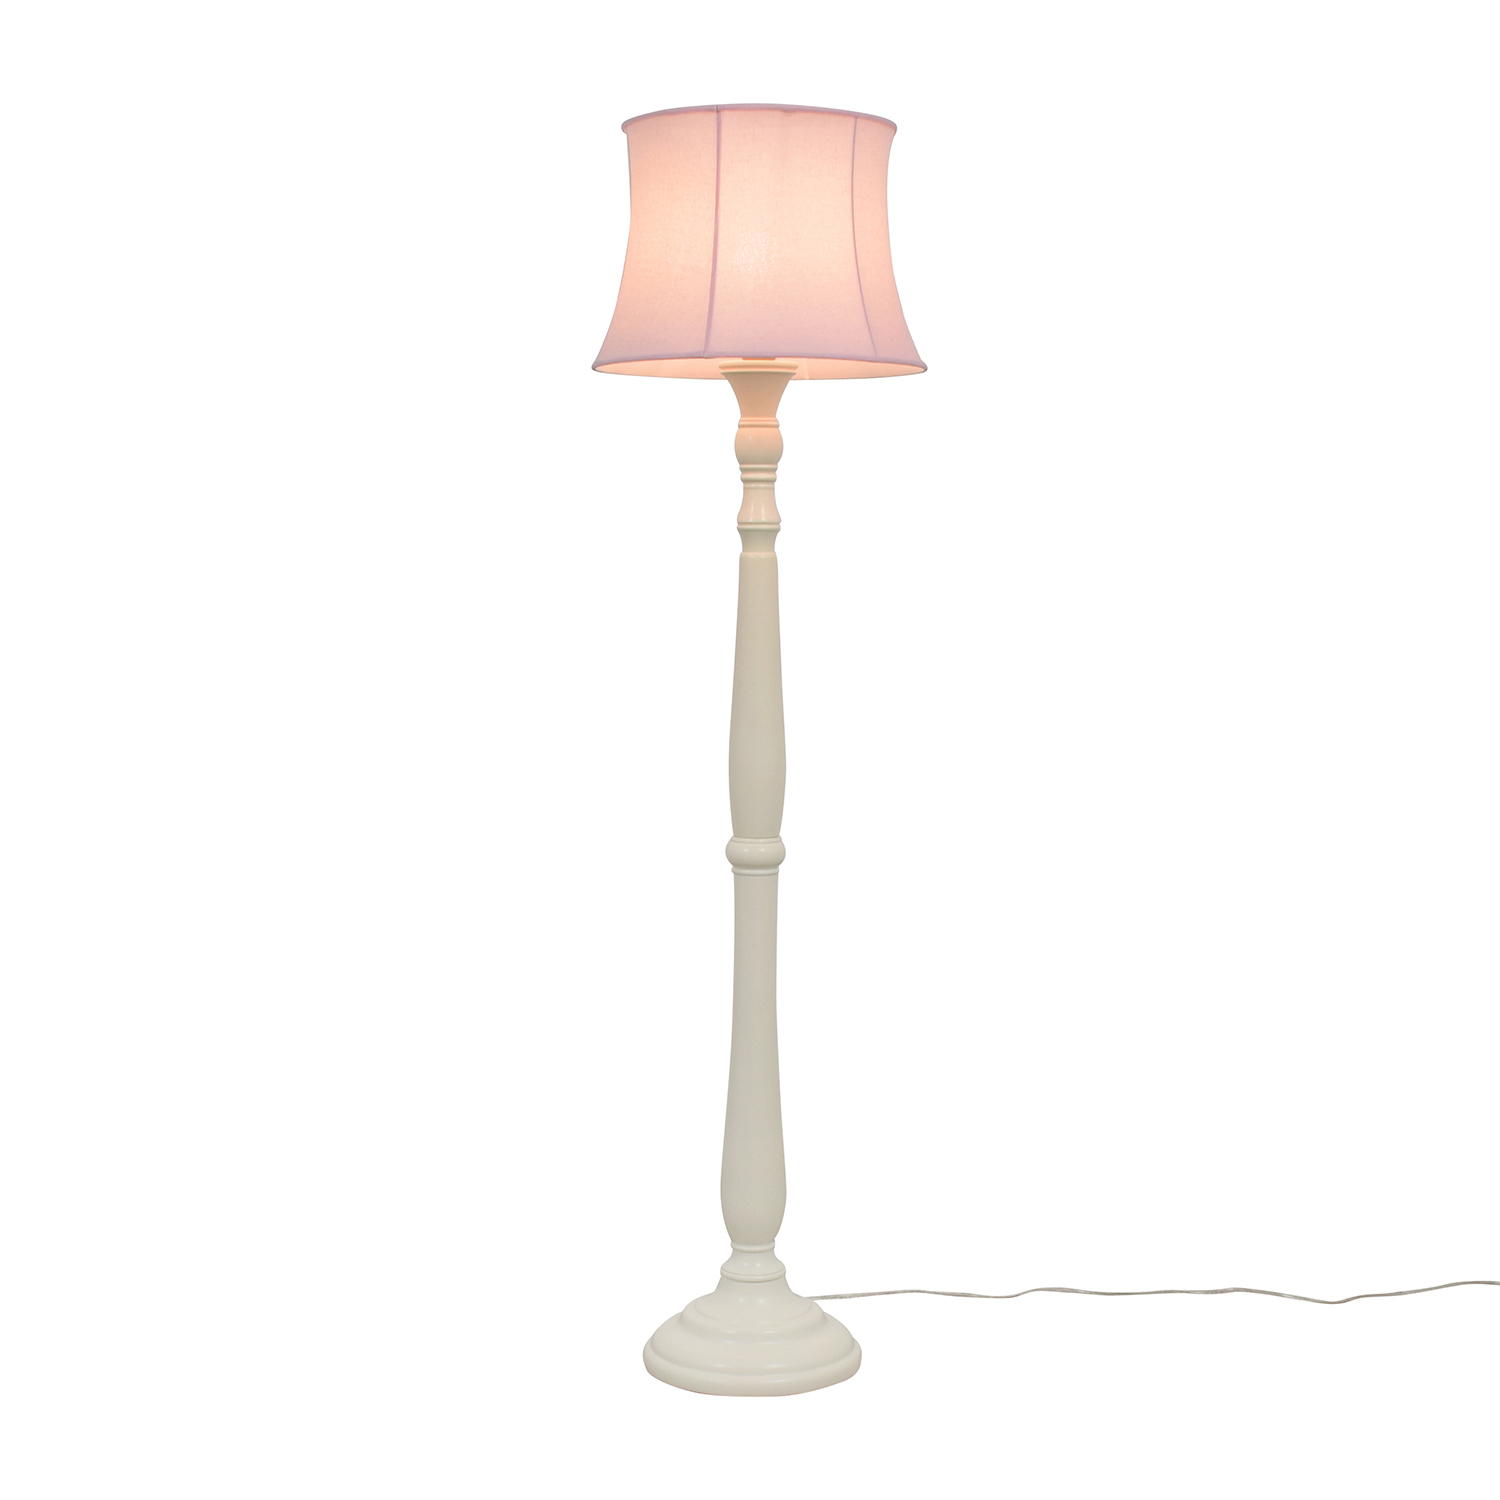 Pottery Barn Payton Floor Base Lamp with Pink Shade Pottery Barn